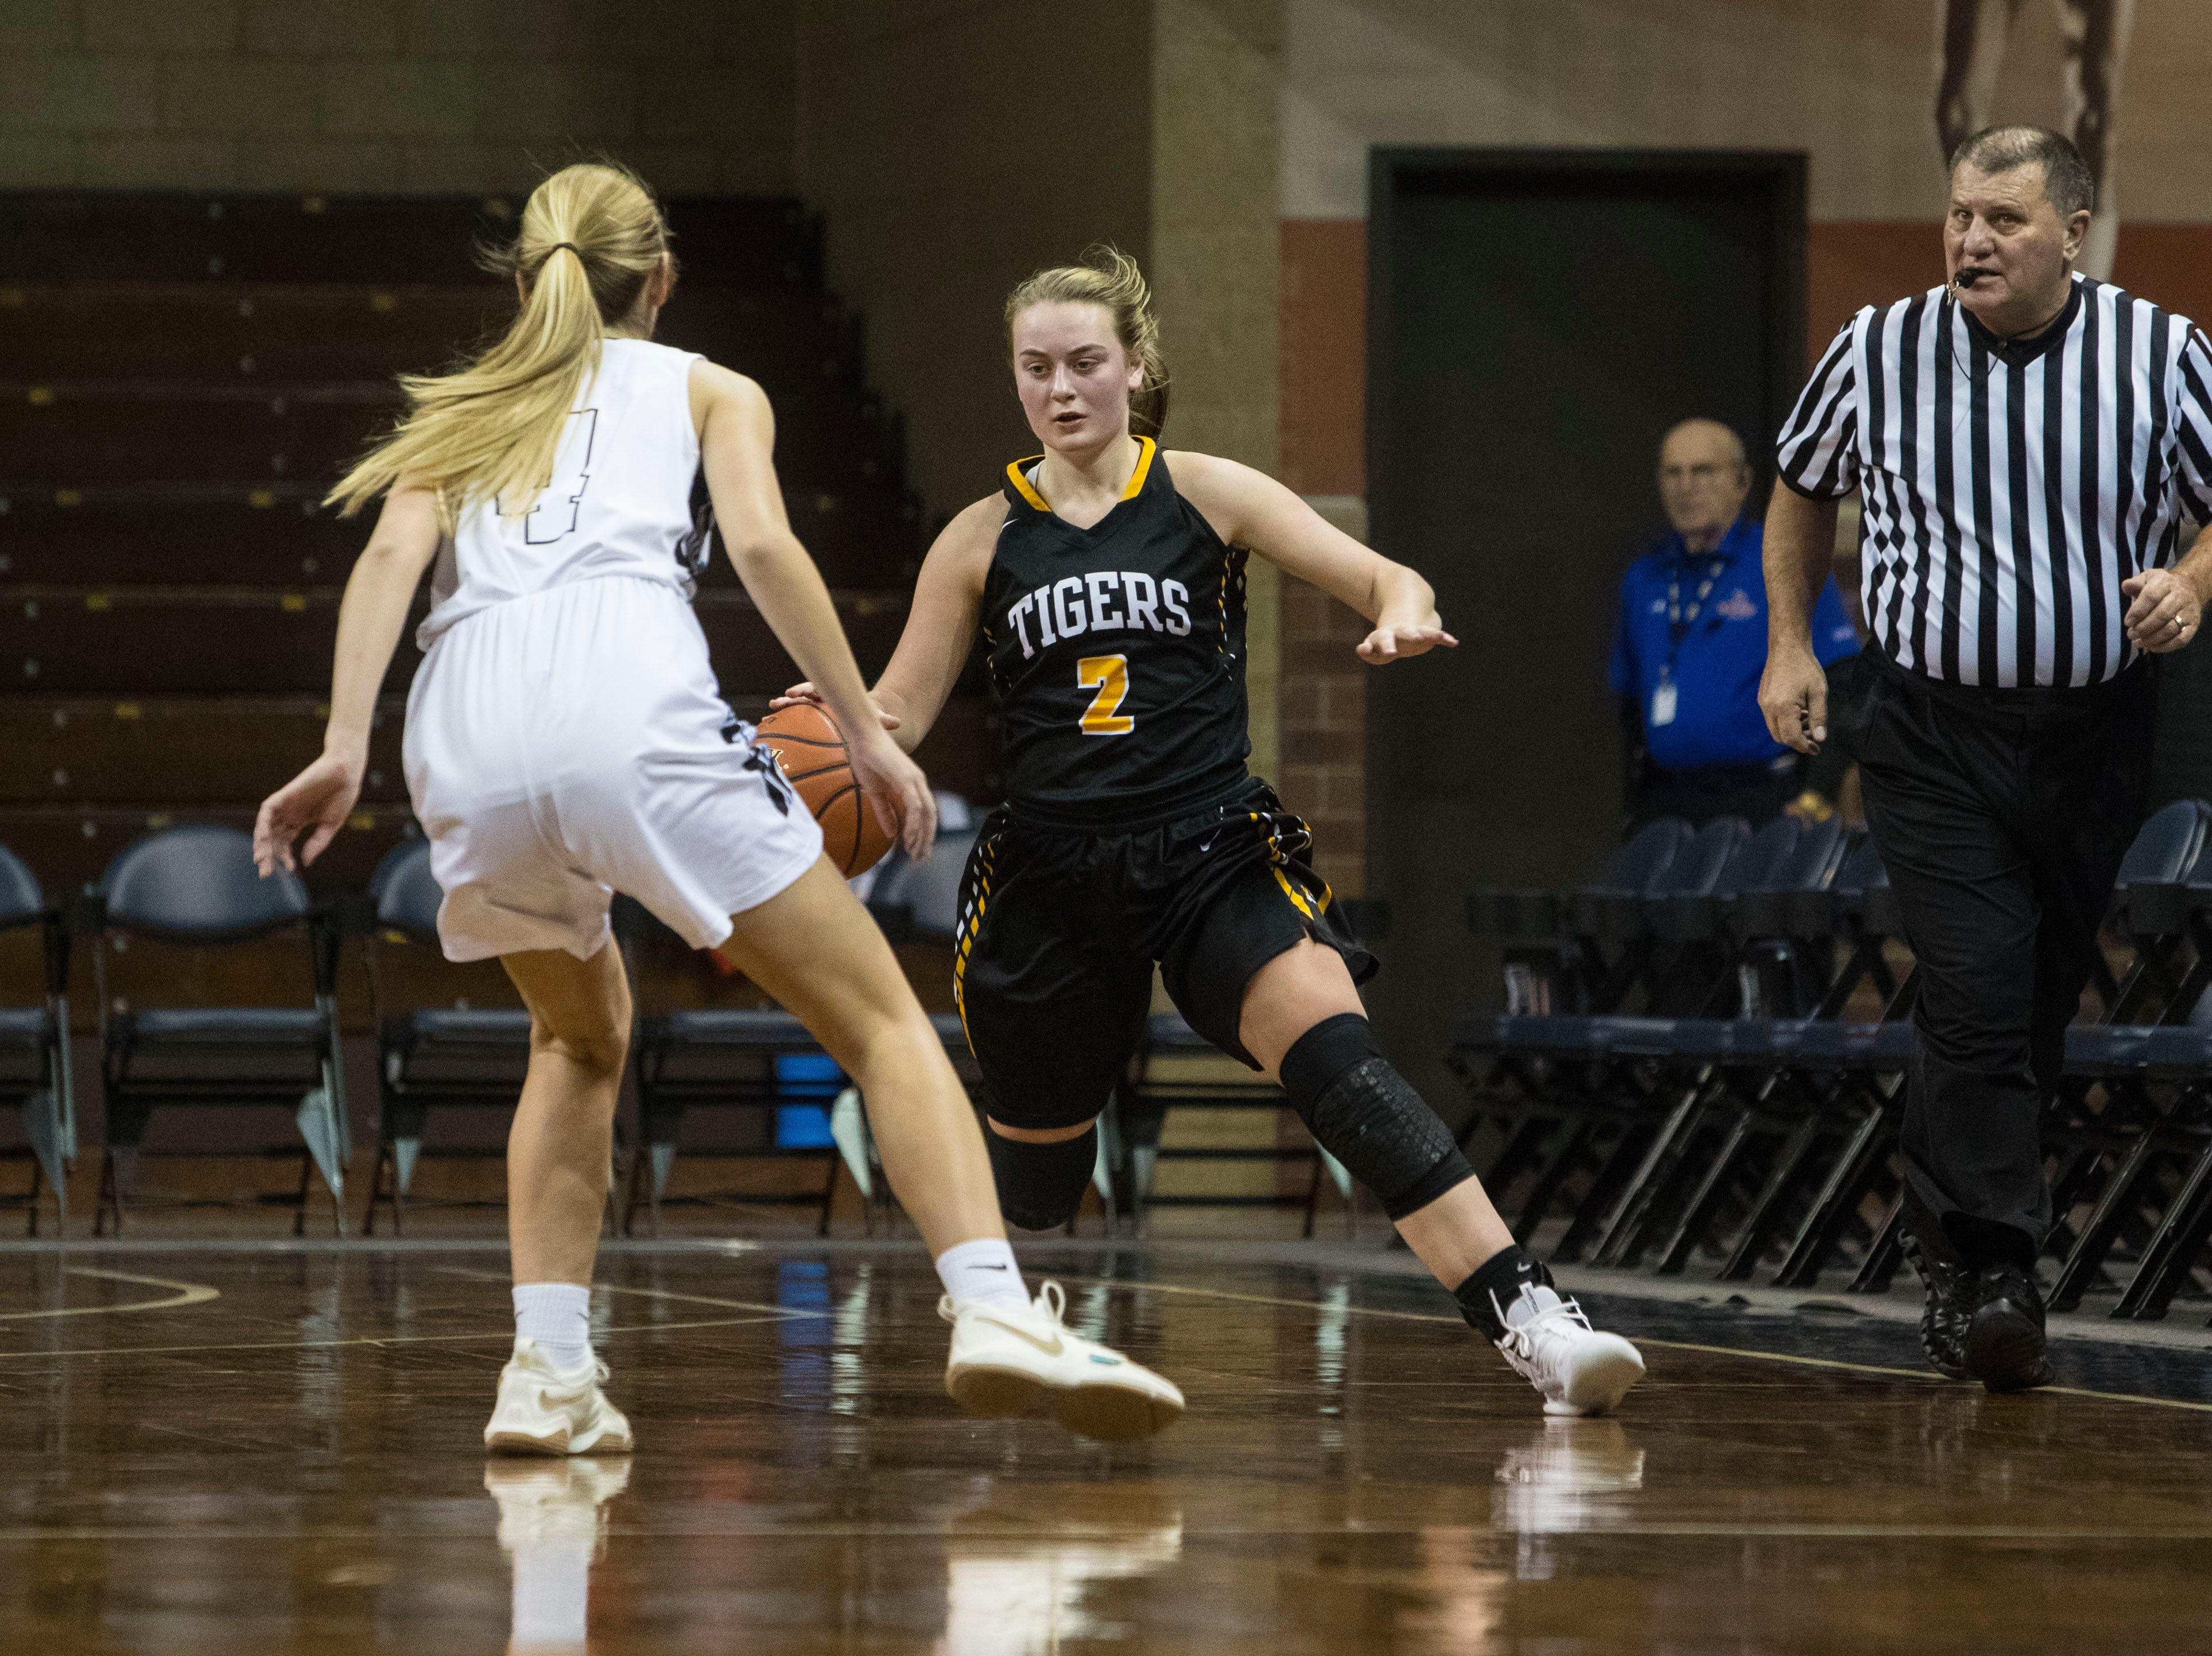 Hutchinson's Elizabeth Wortz (2) dribbles the ball past Sioux Falls Christian's Sam Fykstra (4) at the Hoop City Classic at the Sanford Pentagon in Sioux Falls, S.D., Saturday, Dec. 29, 2018.